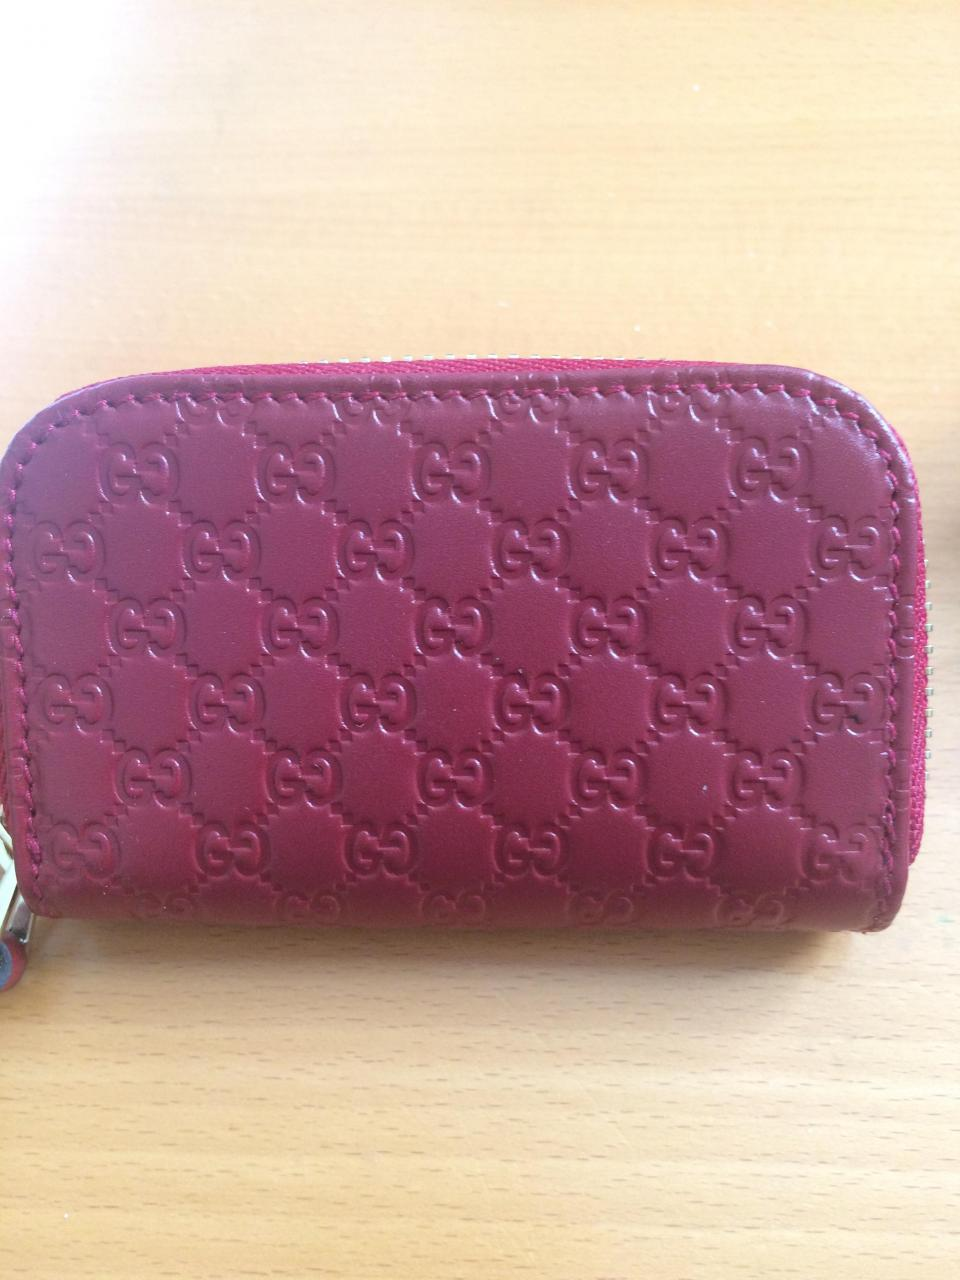 Replica Bags Clearance Gucci                        Dark Red Zip Coin Purse Wallet